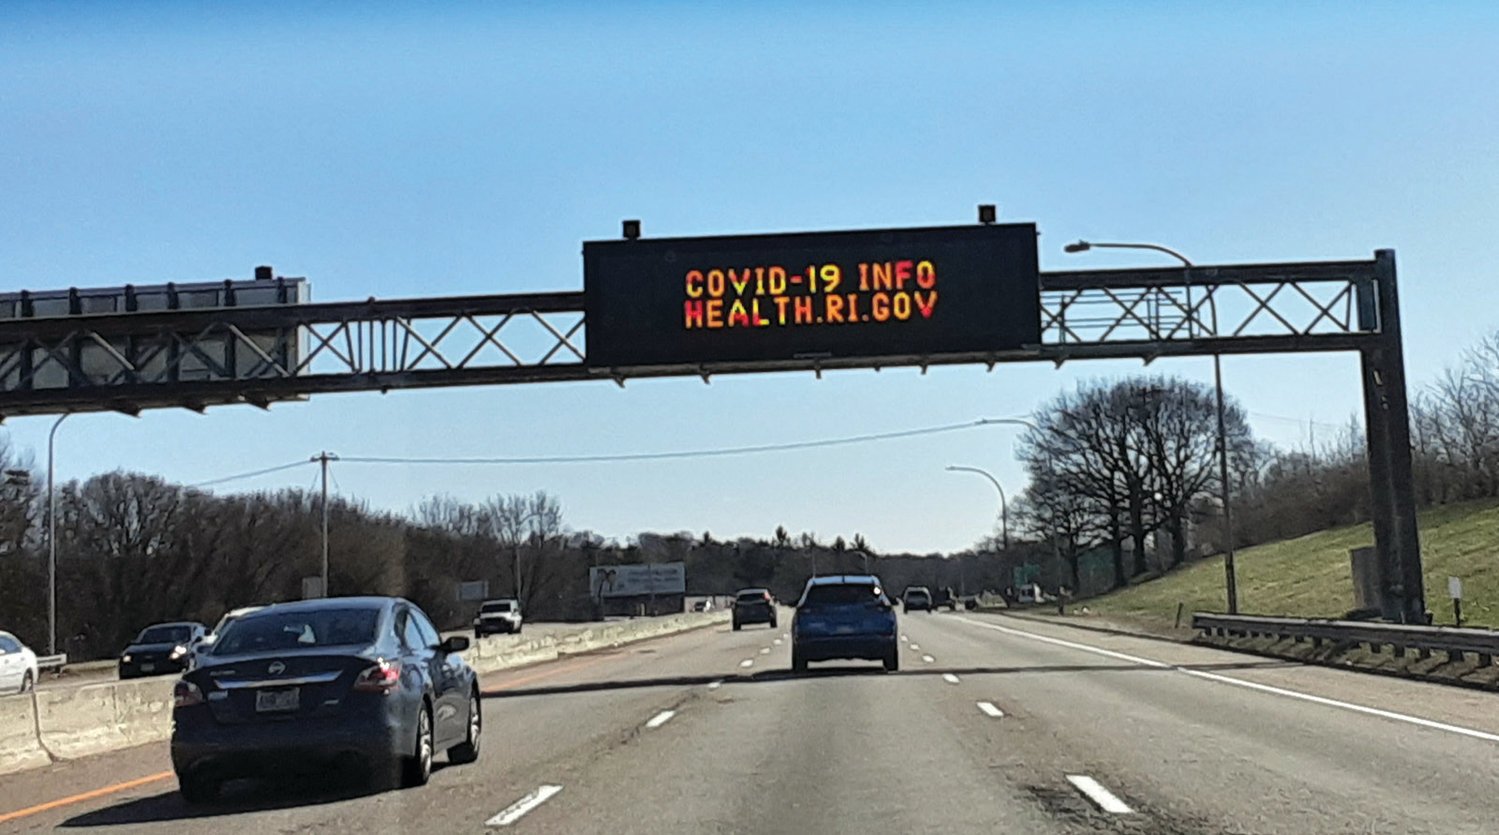 SIGN OF THE TIMES: An I-95 billboard advising of COVID-19 information caught Jen Cowart by surprise as the family traveled to move one of their daughters out of college on Sunday.